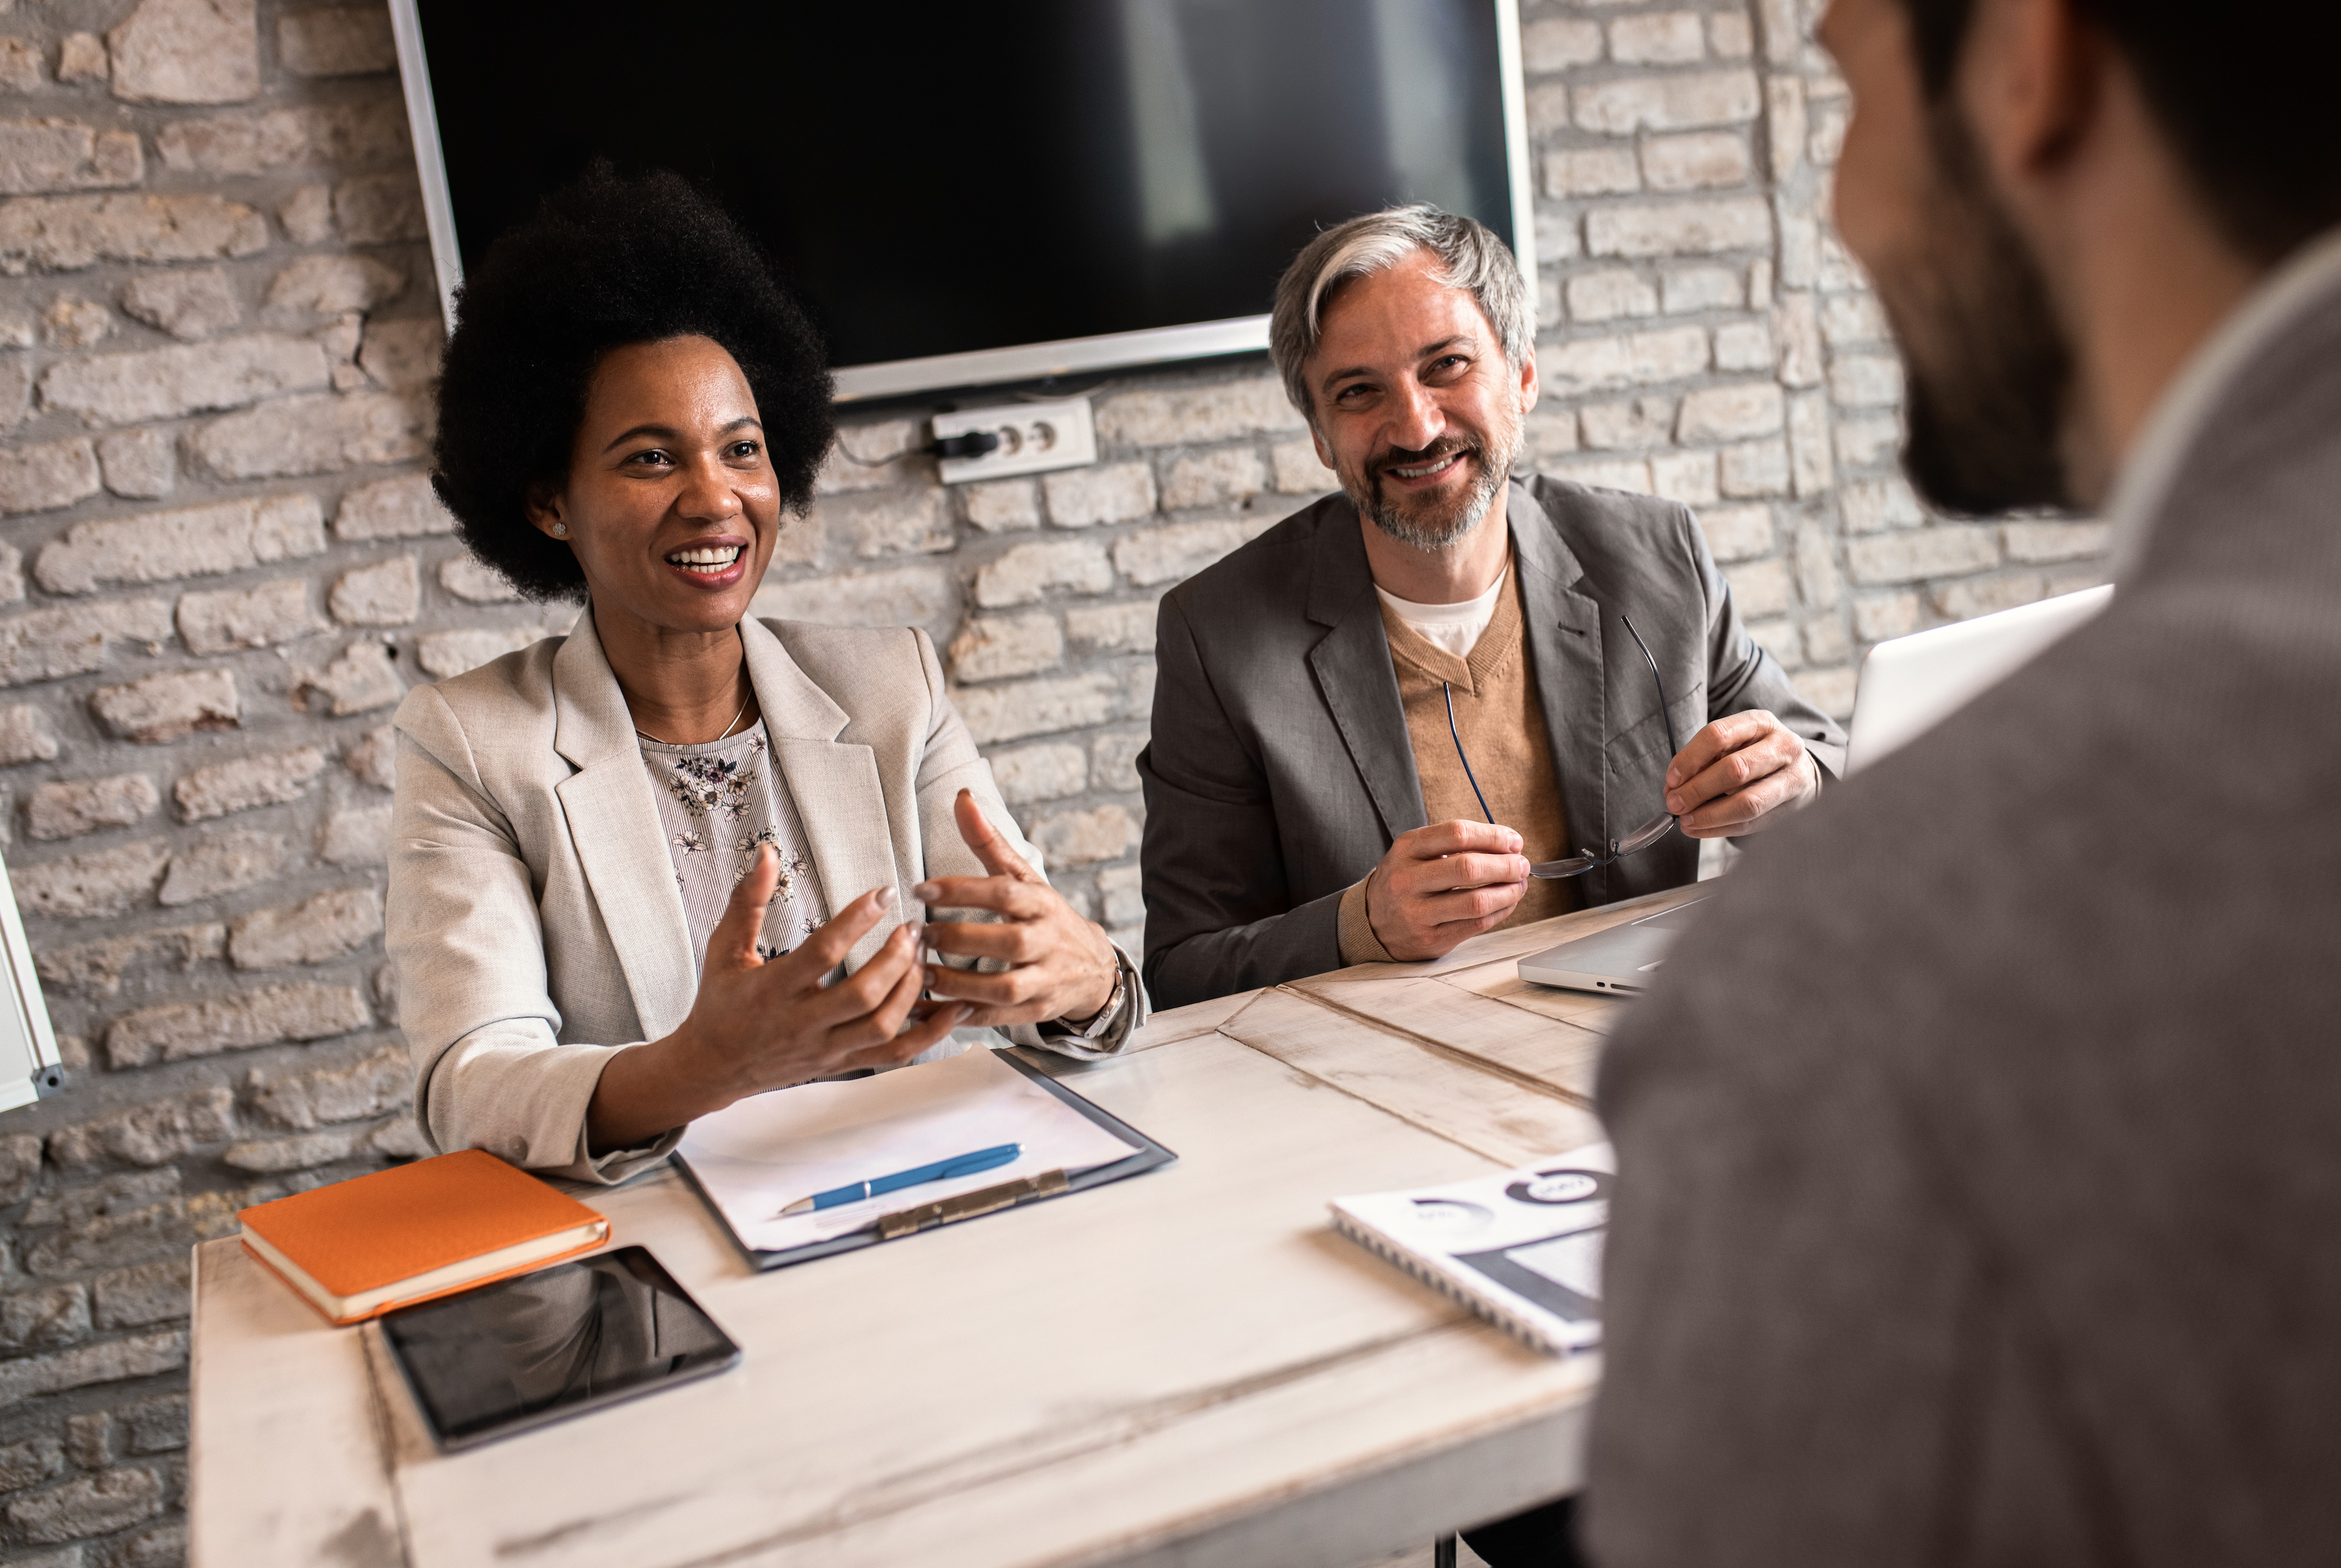 5 Common Interview Questions and How to Prep - Style Nine to Five